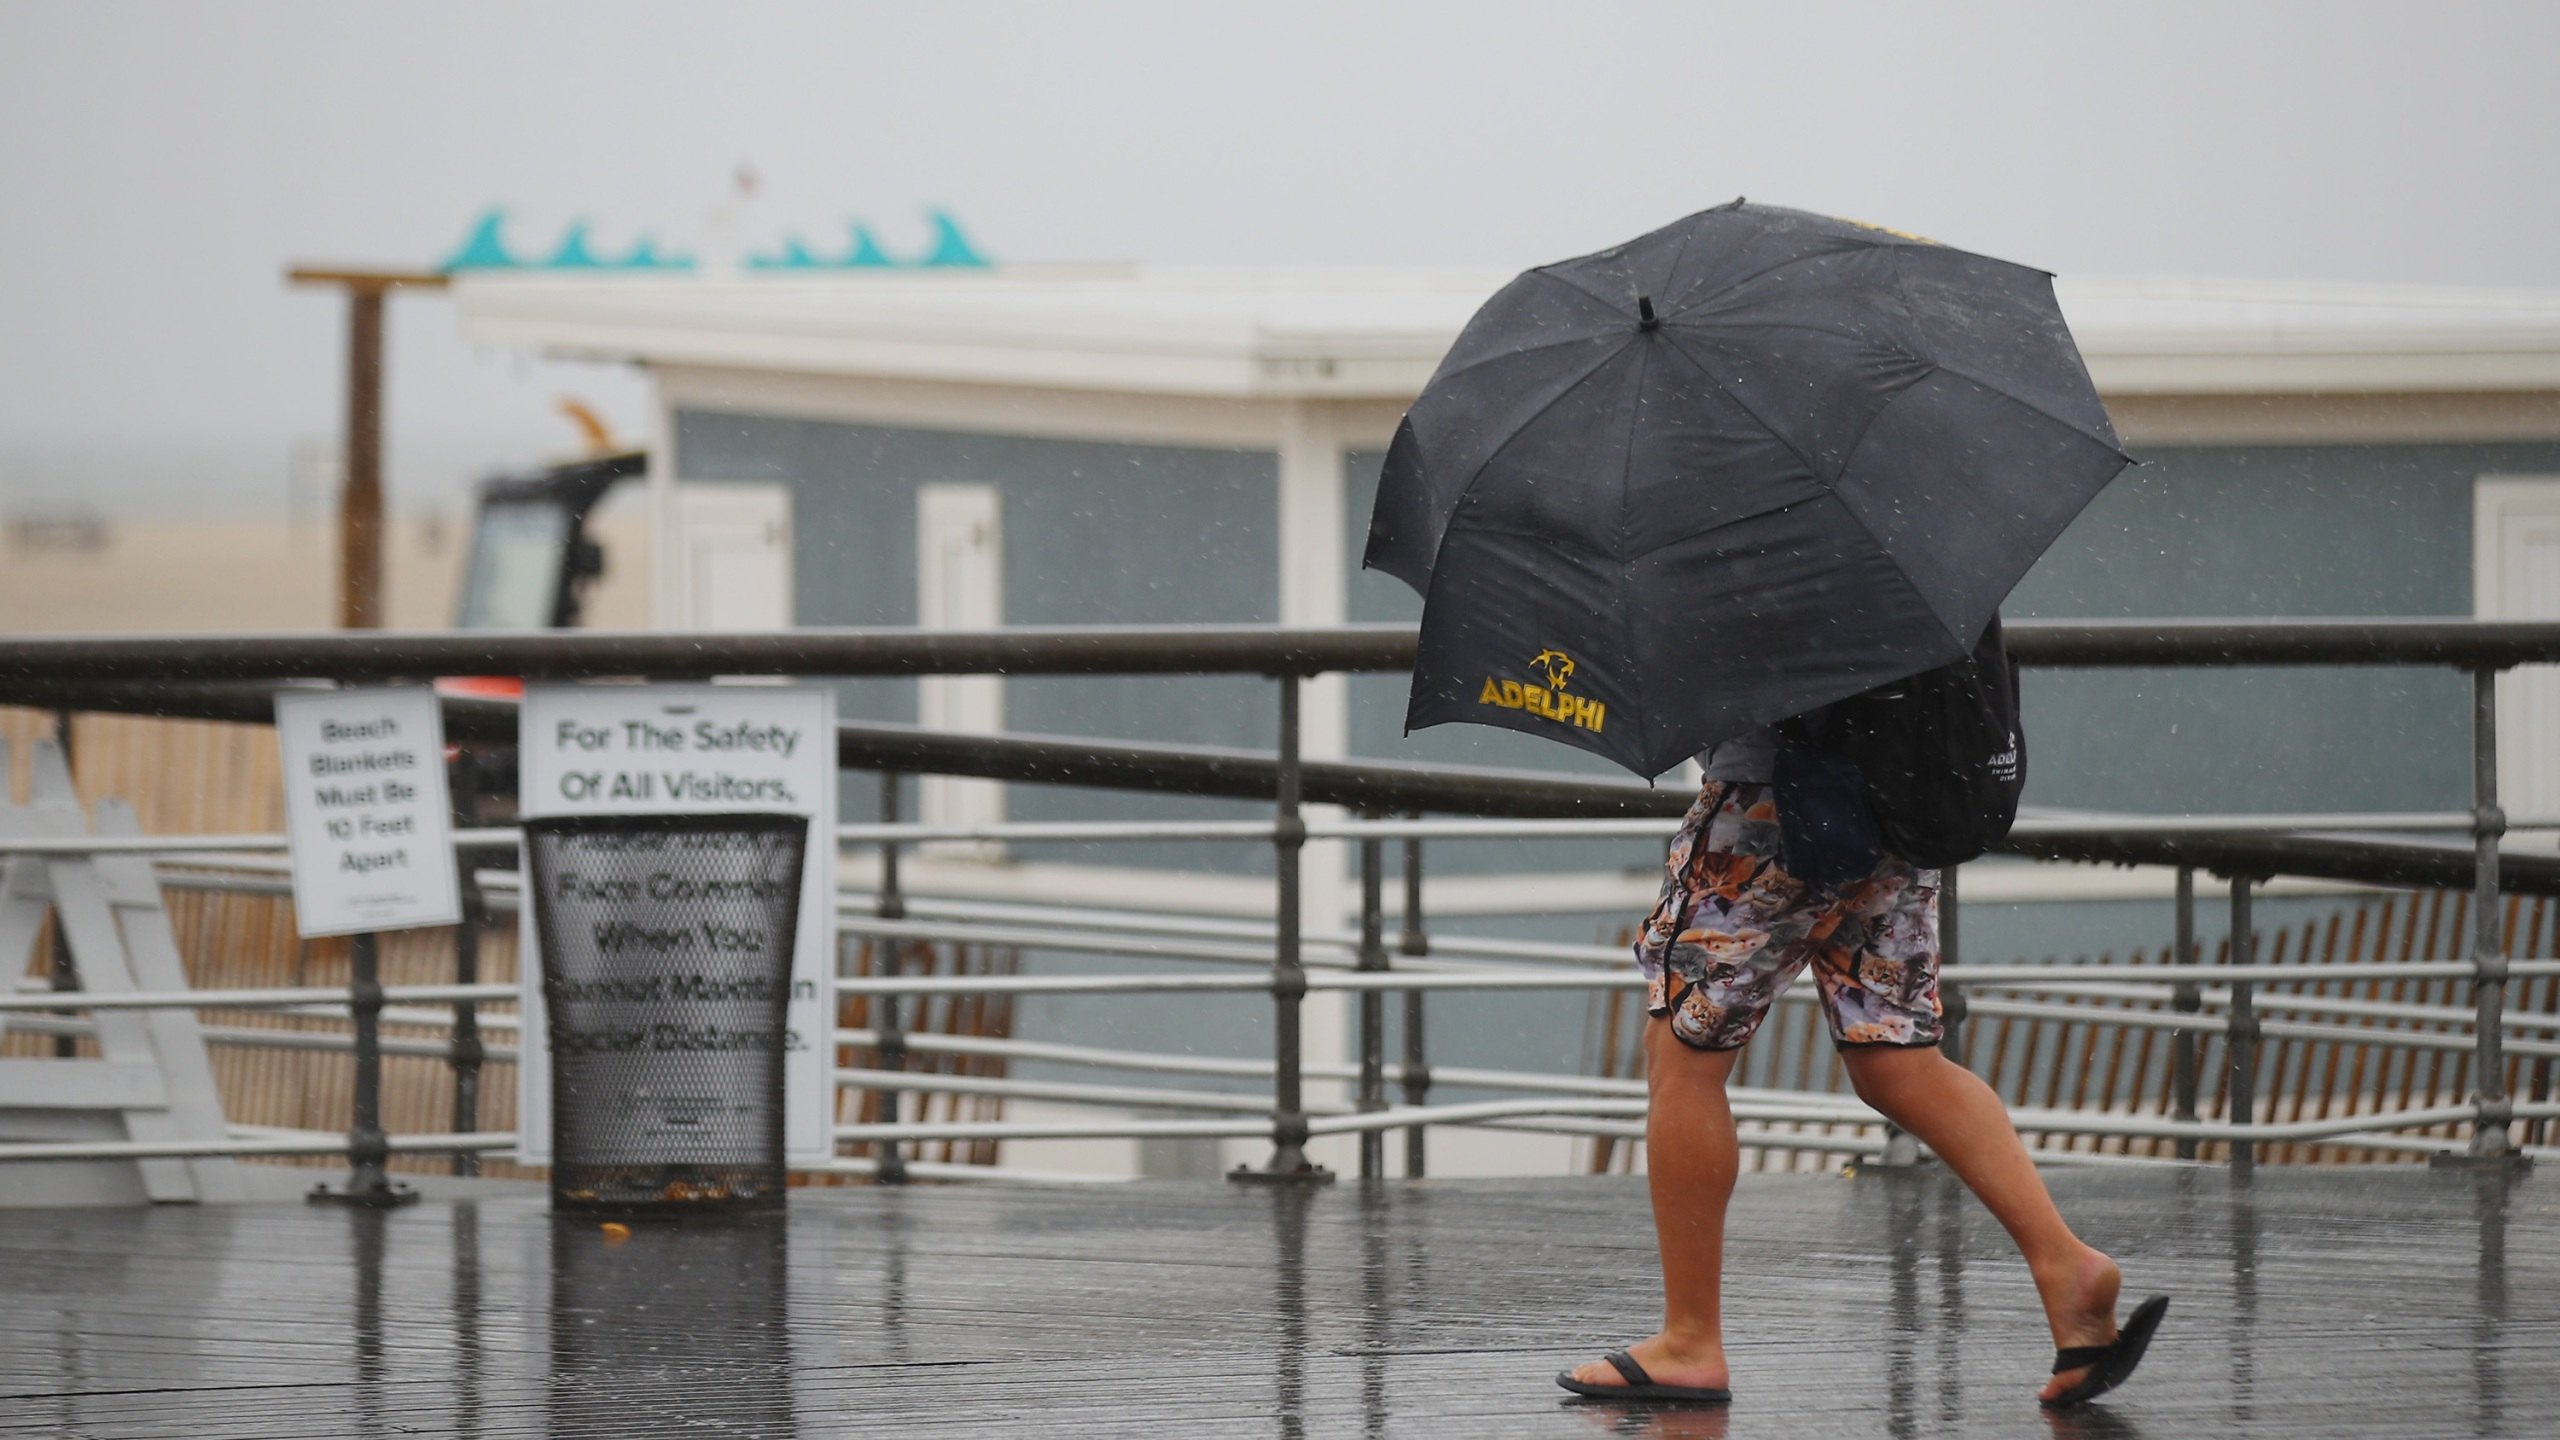 Visitors walk the boardwalk in rainy weather at Jones Beach on July 10, 2020, in Wantagh, New York. The Long Island region is bracing for Tropical Storm Fay as it moves along the eastern seaboard. (Bruce Bennett/Getty Images)